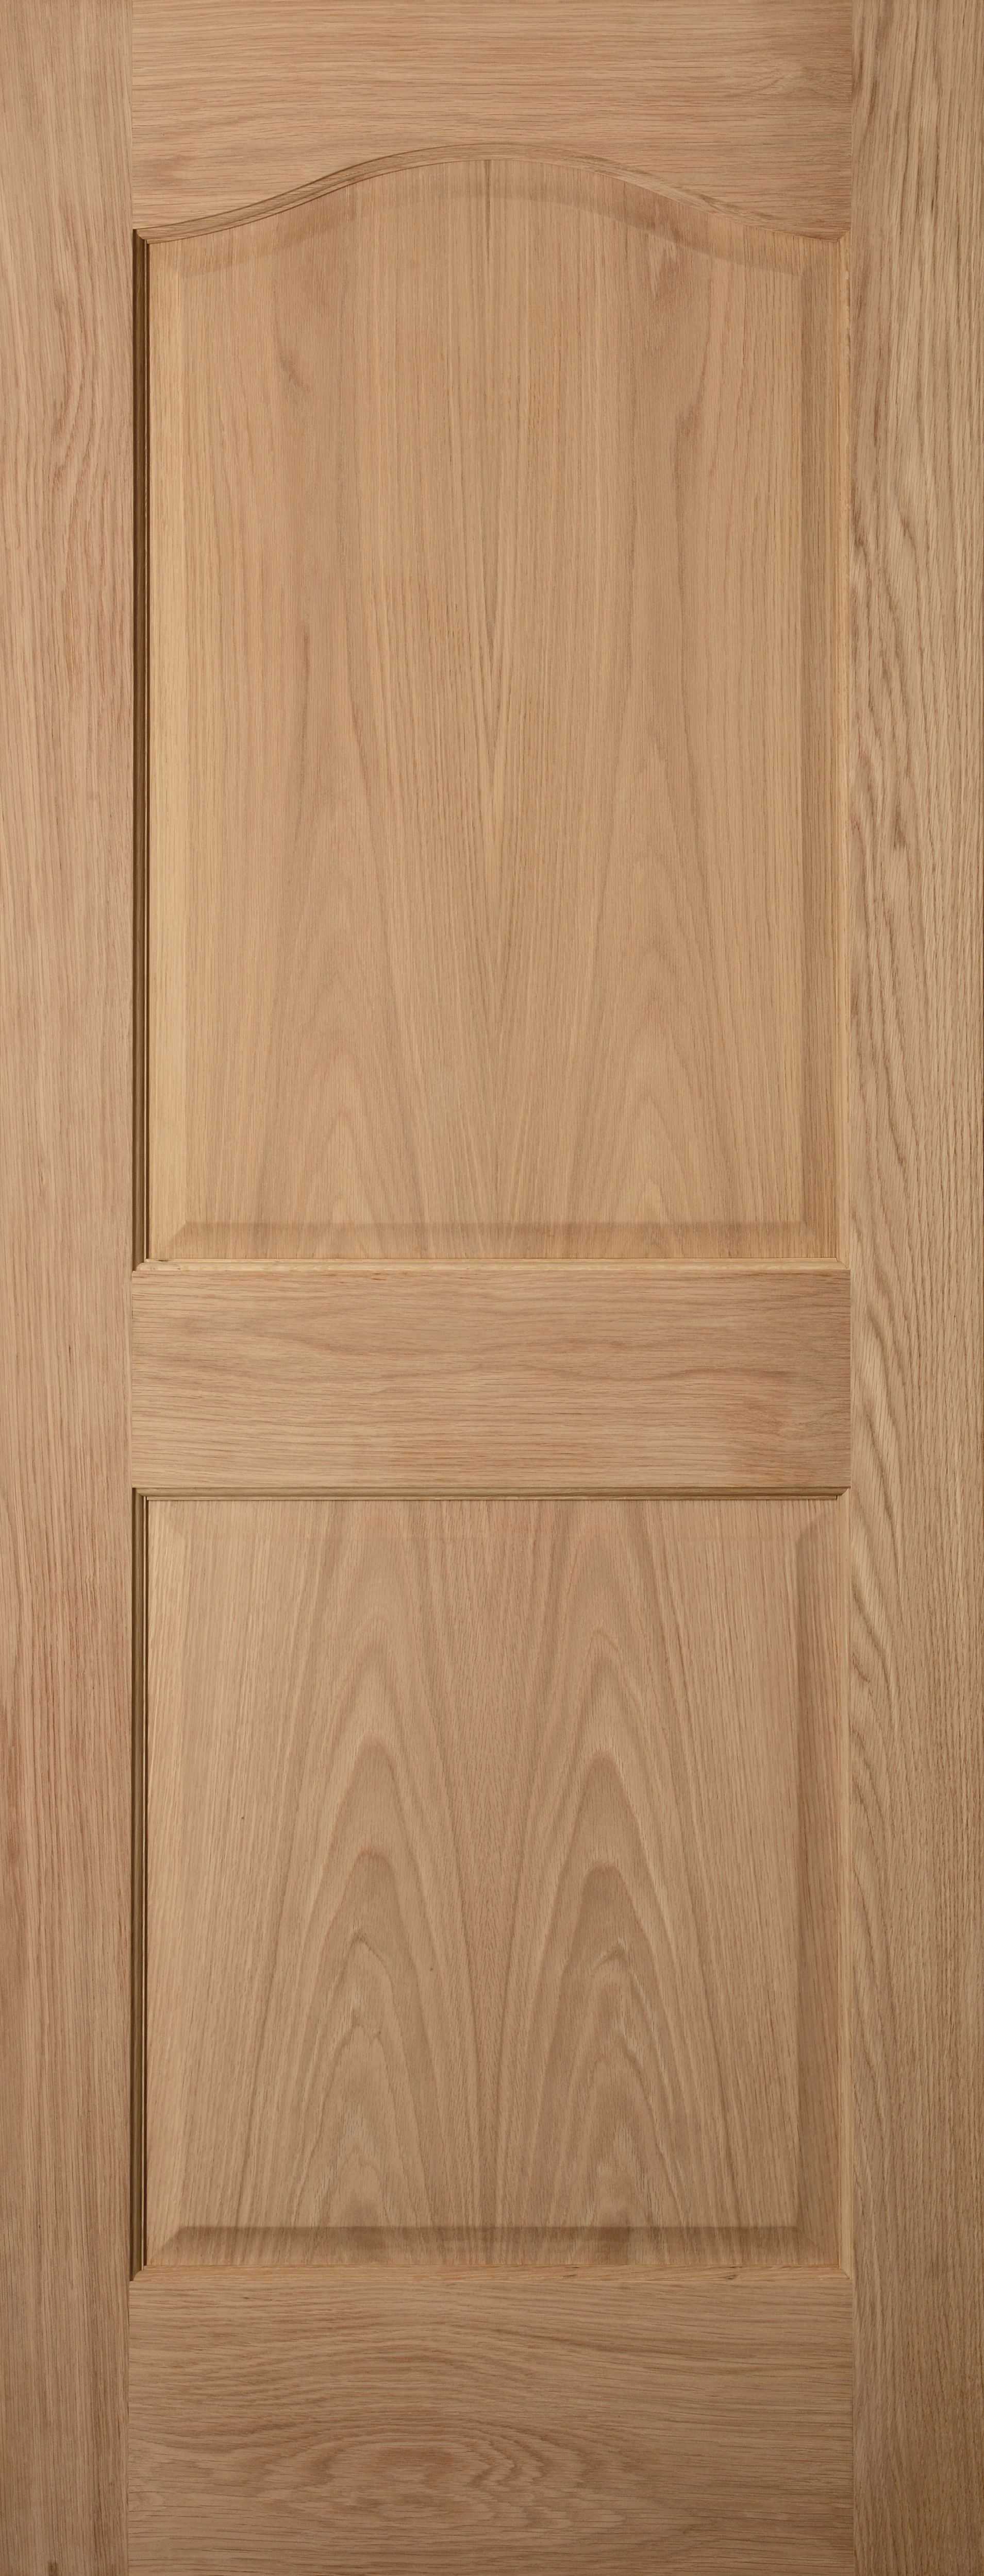 2 Panel Arched Oak Veneer Unglazed Internal Standard Door, (h)1981mm (w)838mm